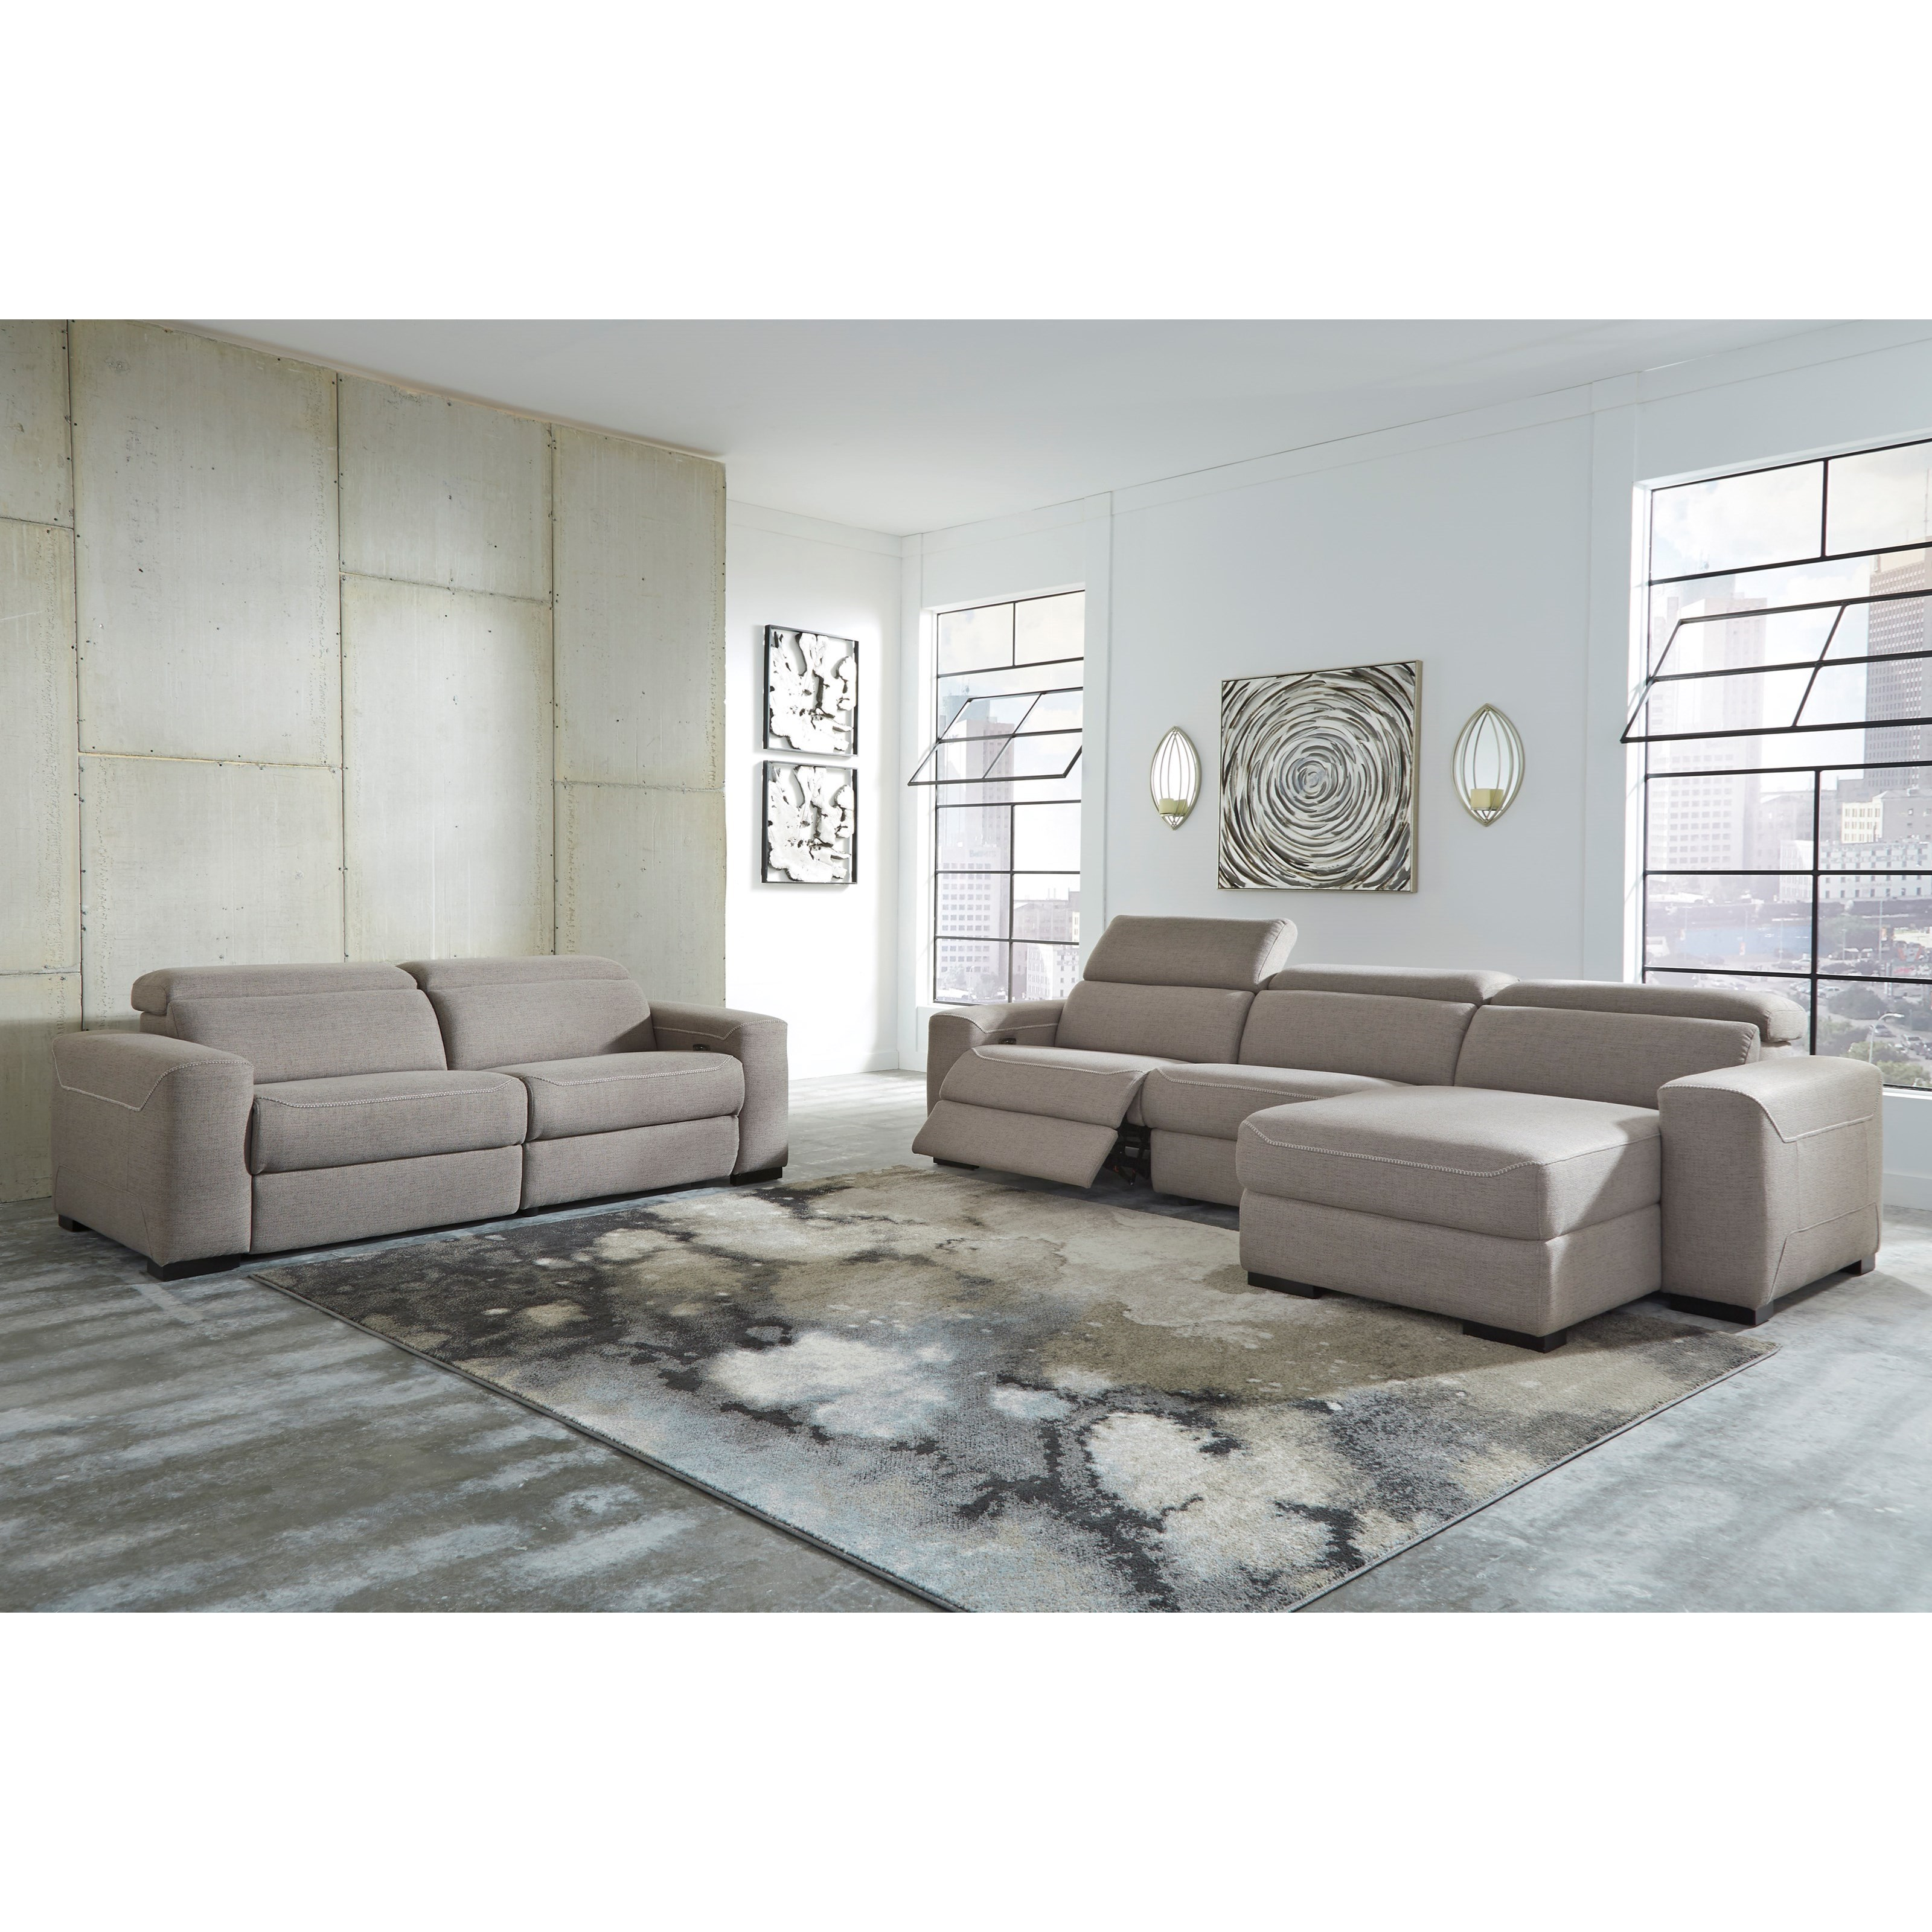 Mabton Power Reclining Living Room Group by Signature Design by Ashley at Value City Furniture